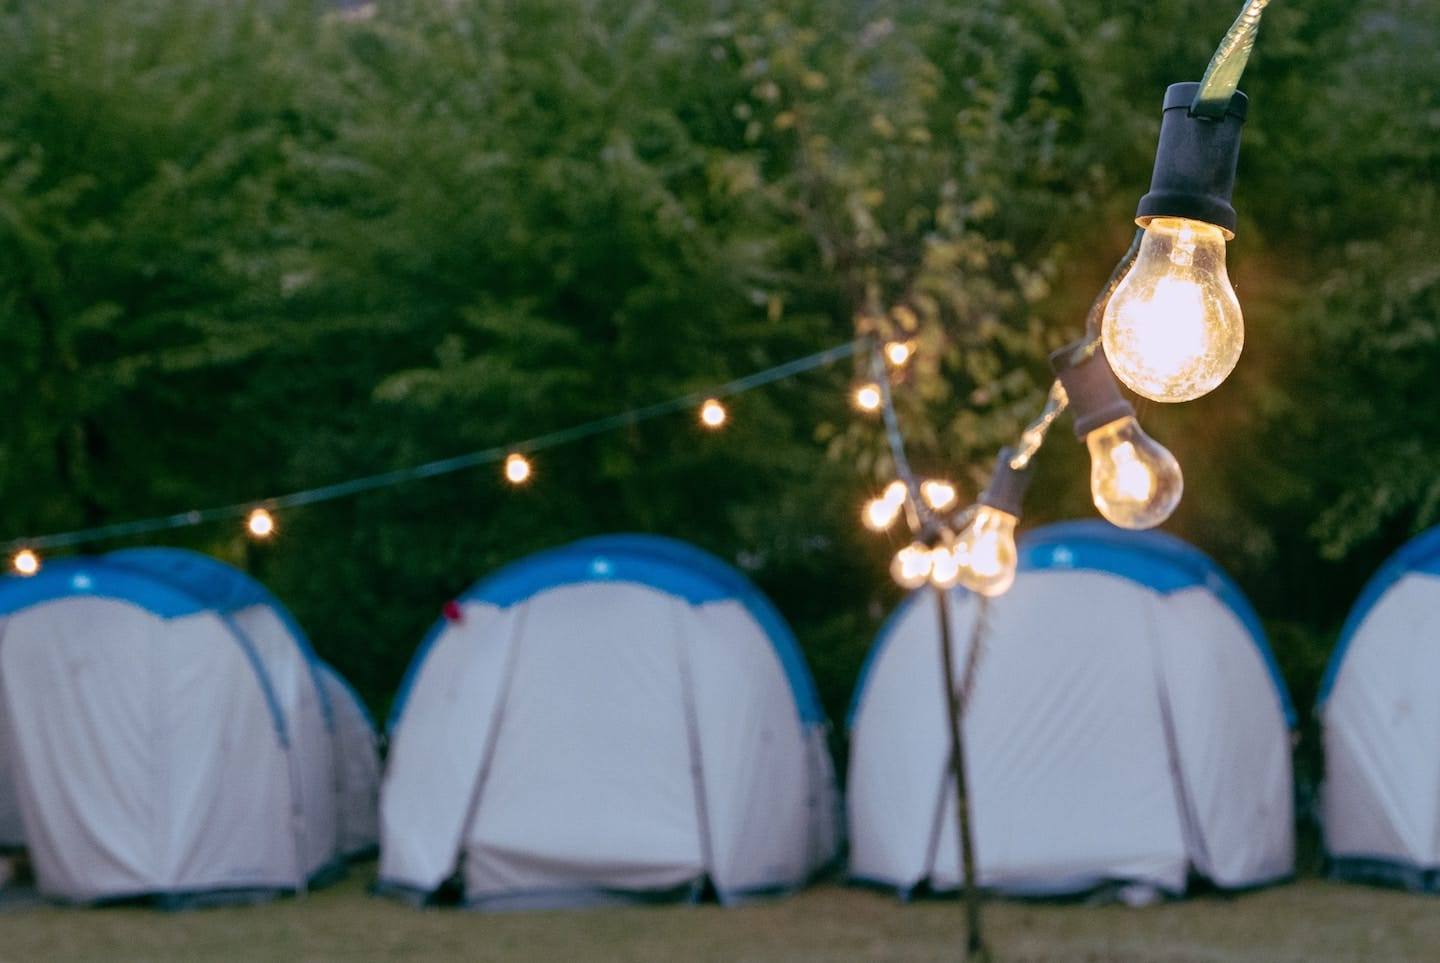 Go camping in your own backyard